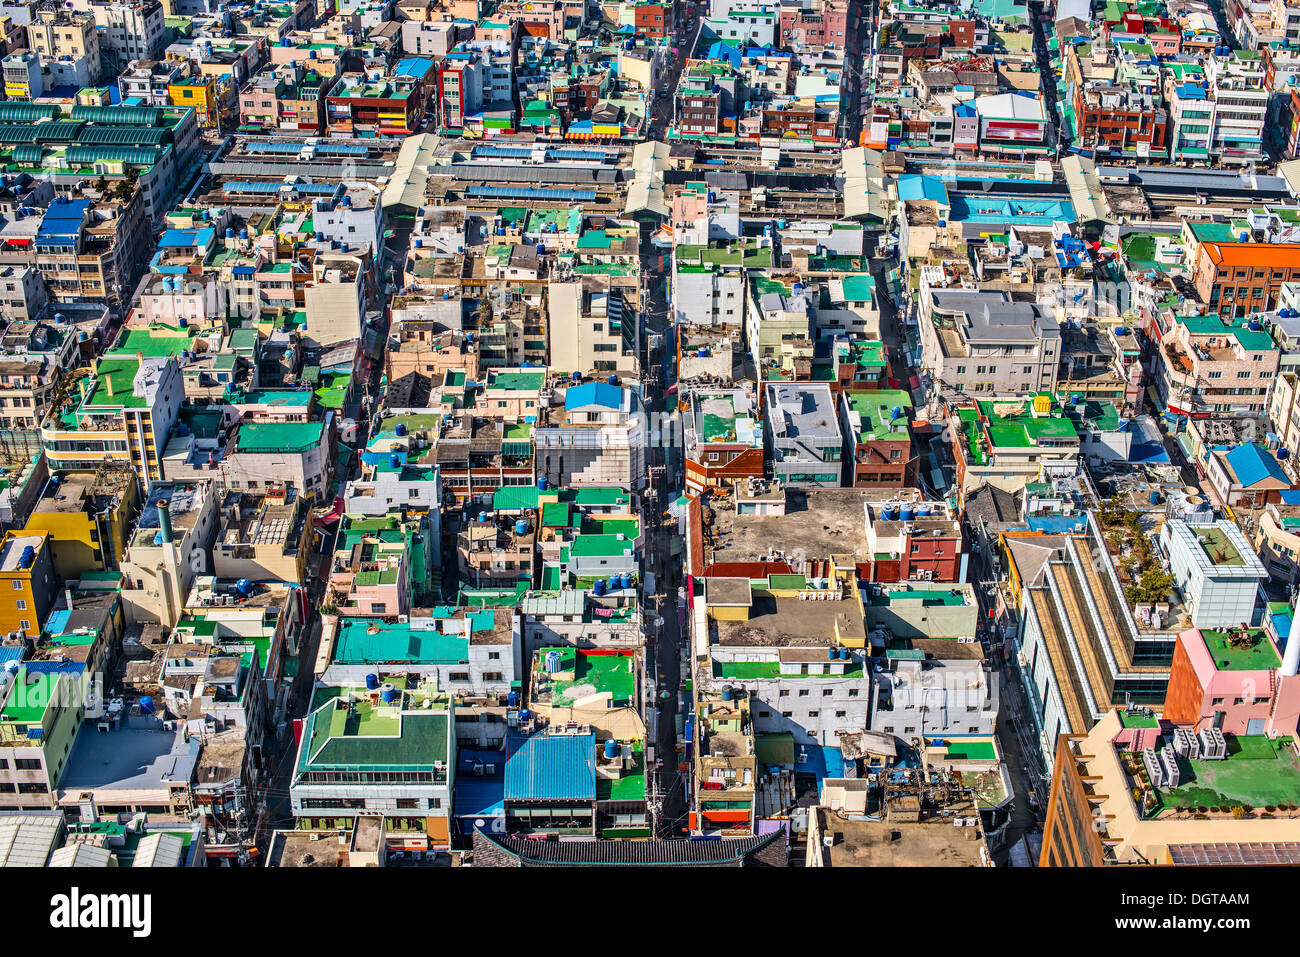 Rooftops in Busan, South Korea. - Stock Image